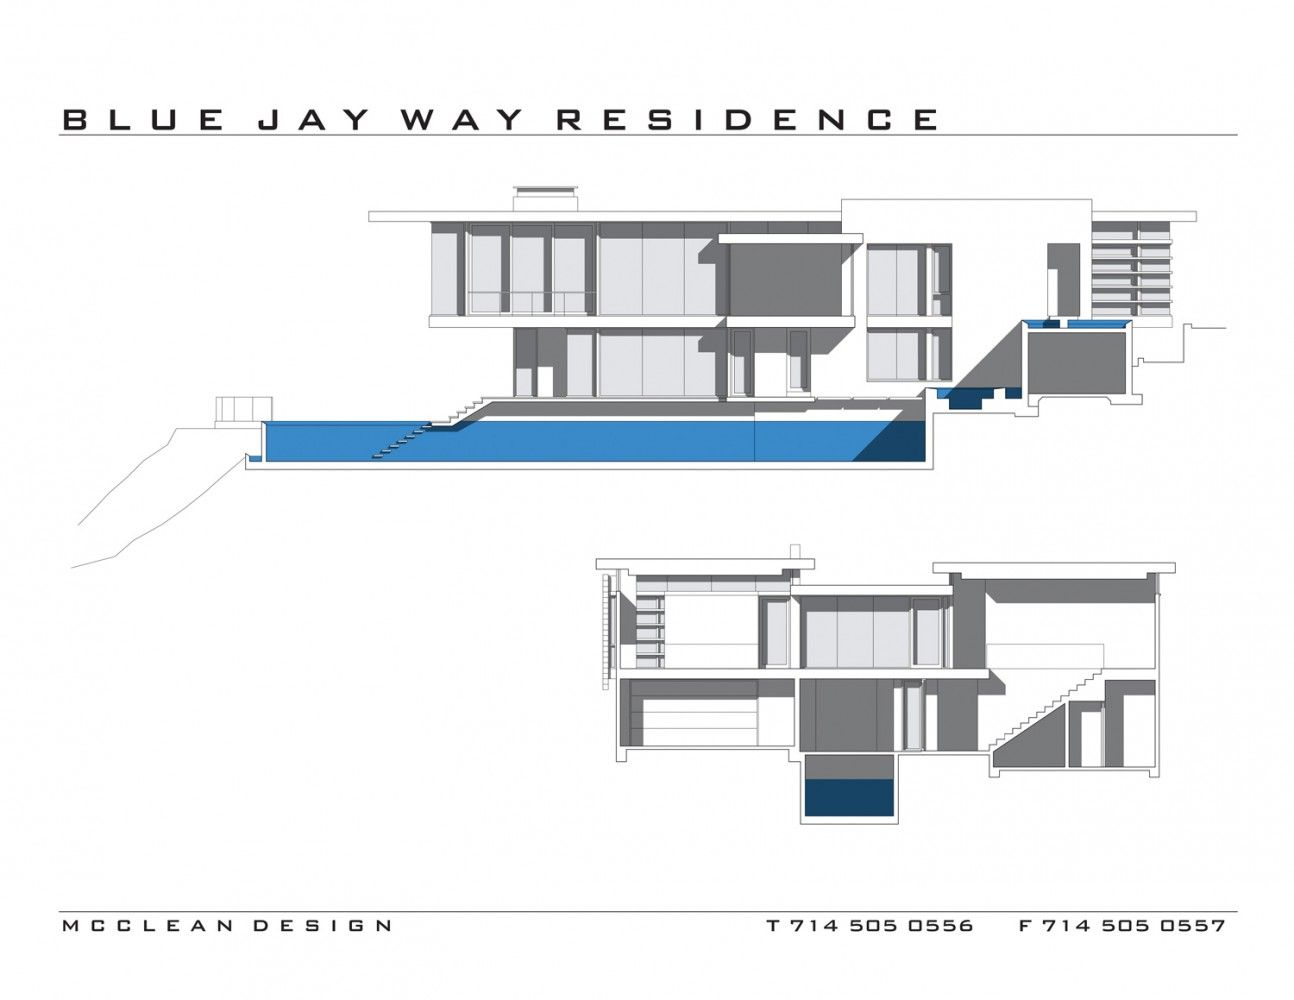 maison blue jay way plan de coupe